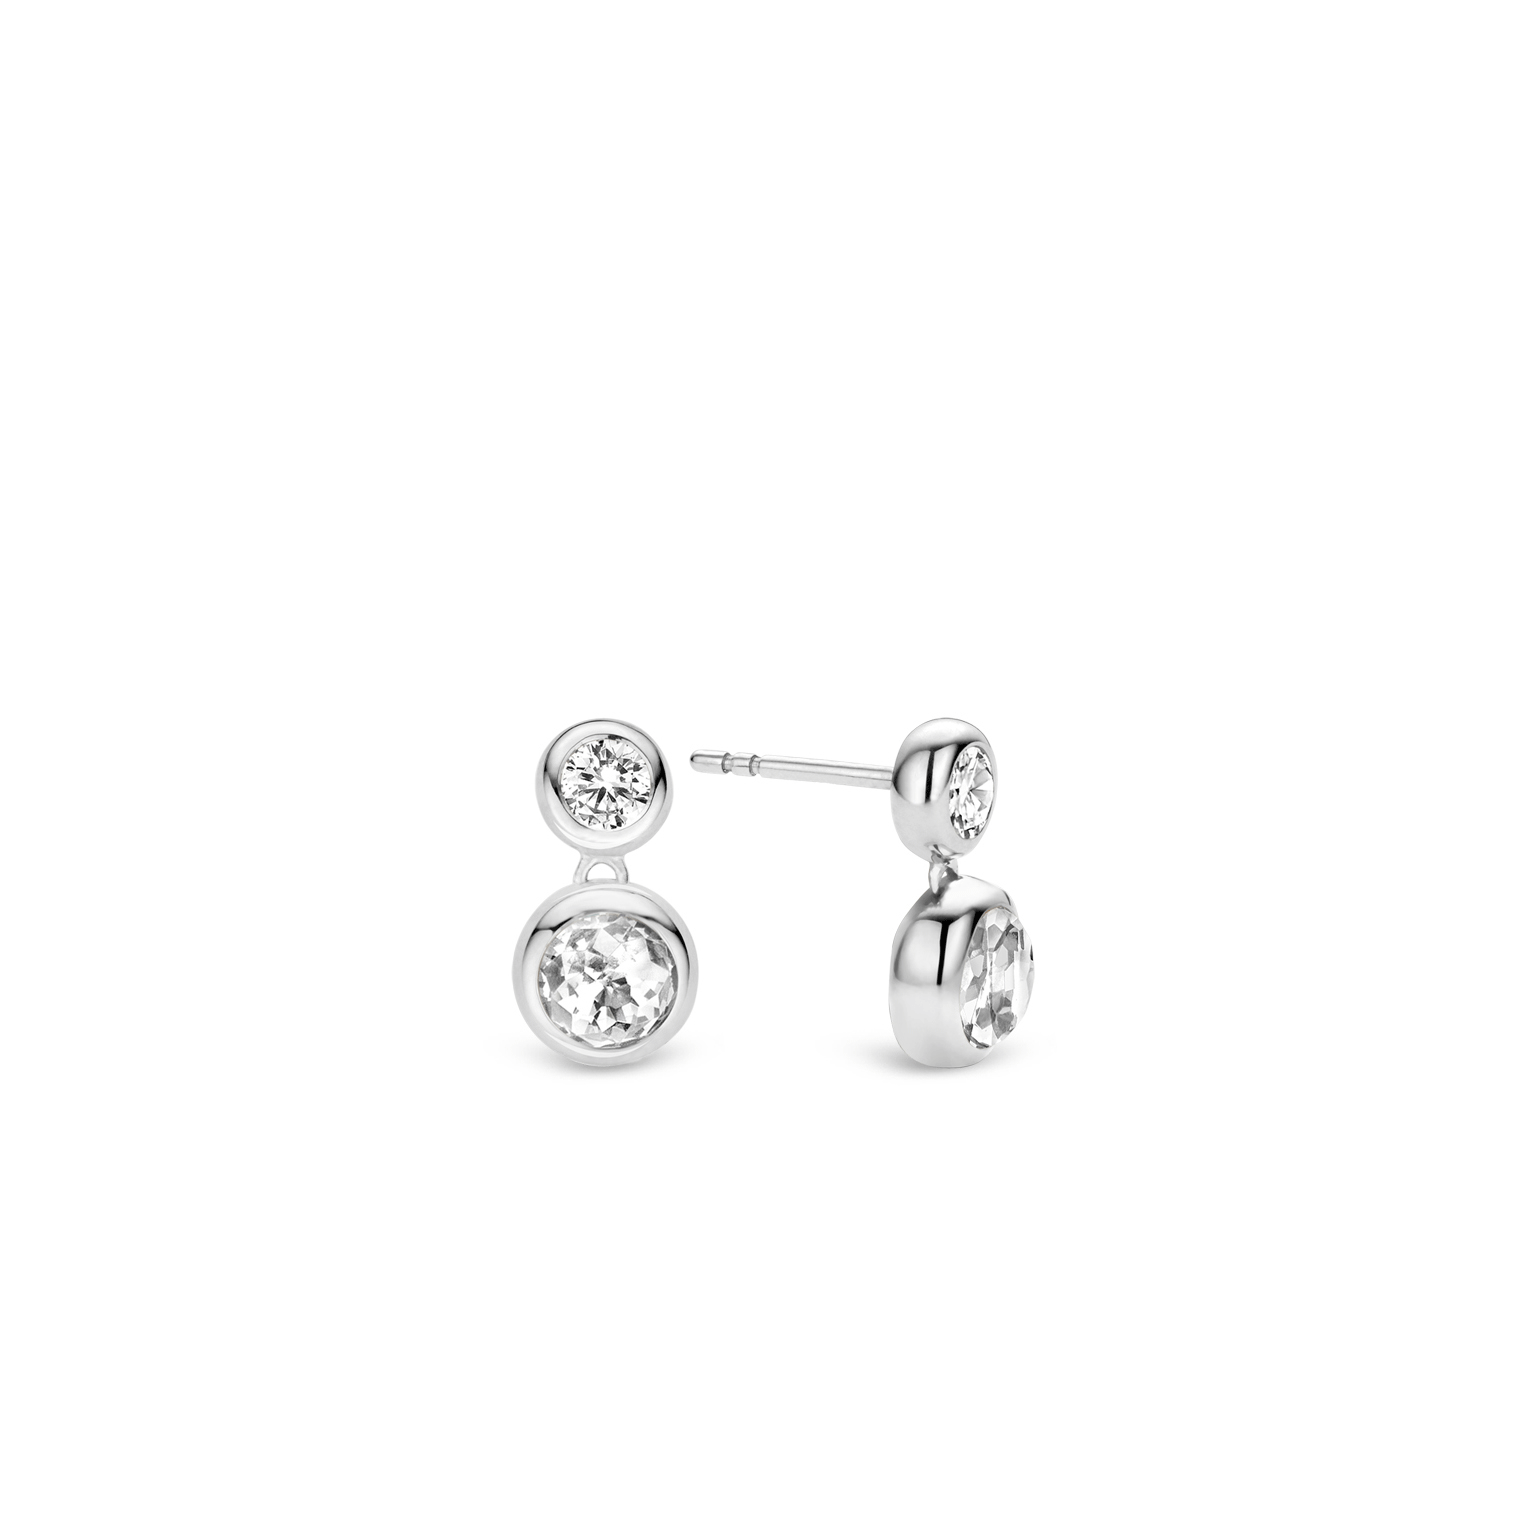 TI SENTO Milano Rhodium Plated Sterling Silver Earrings 7746GG